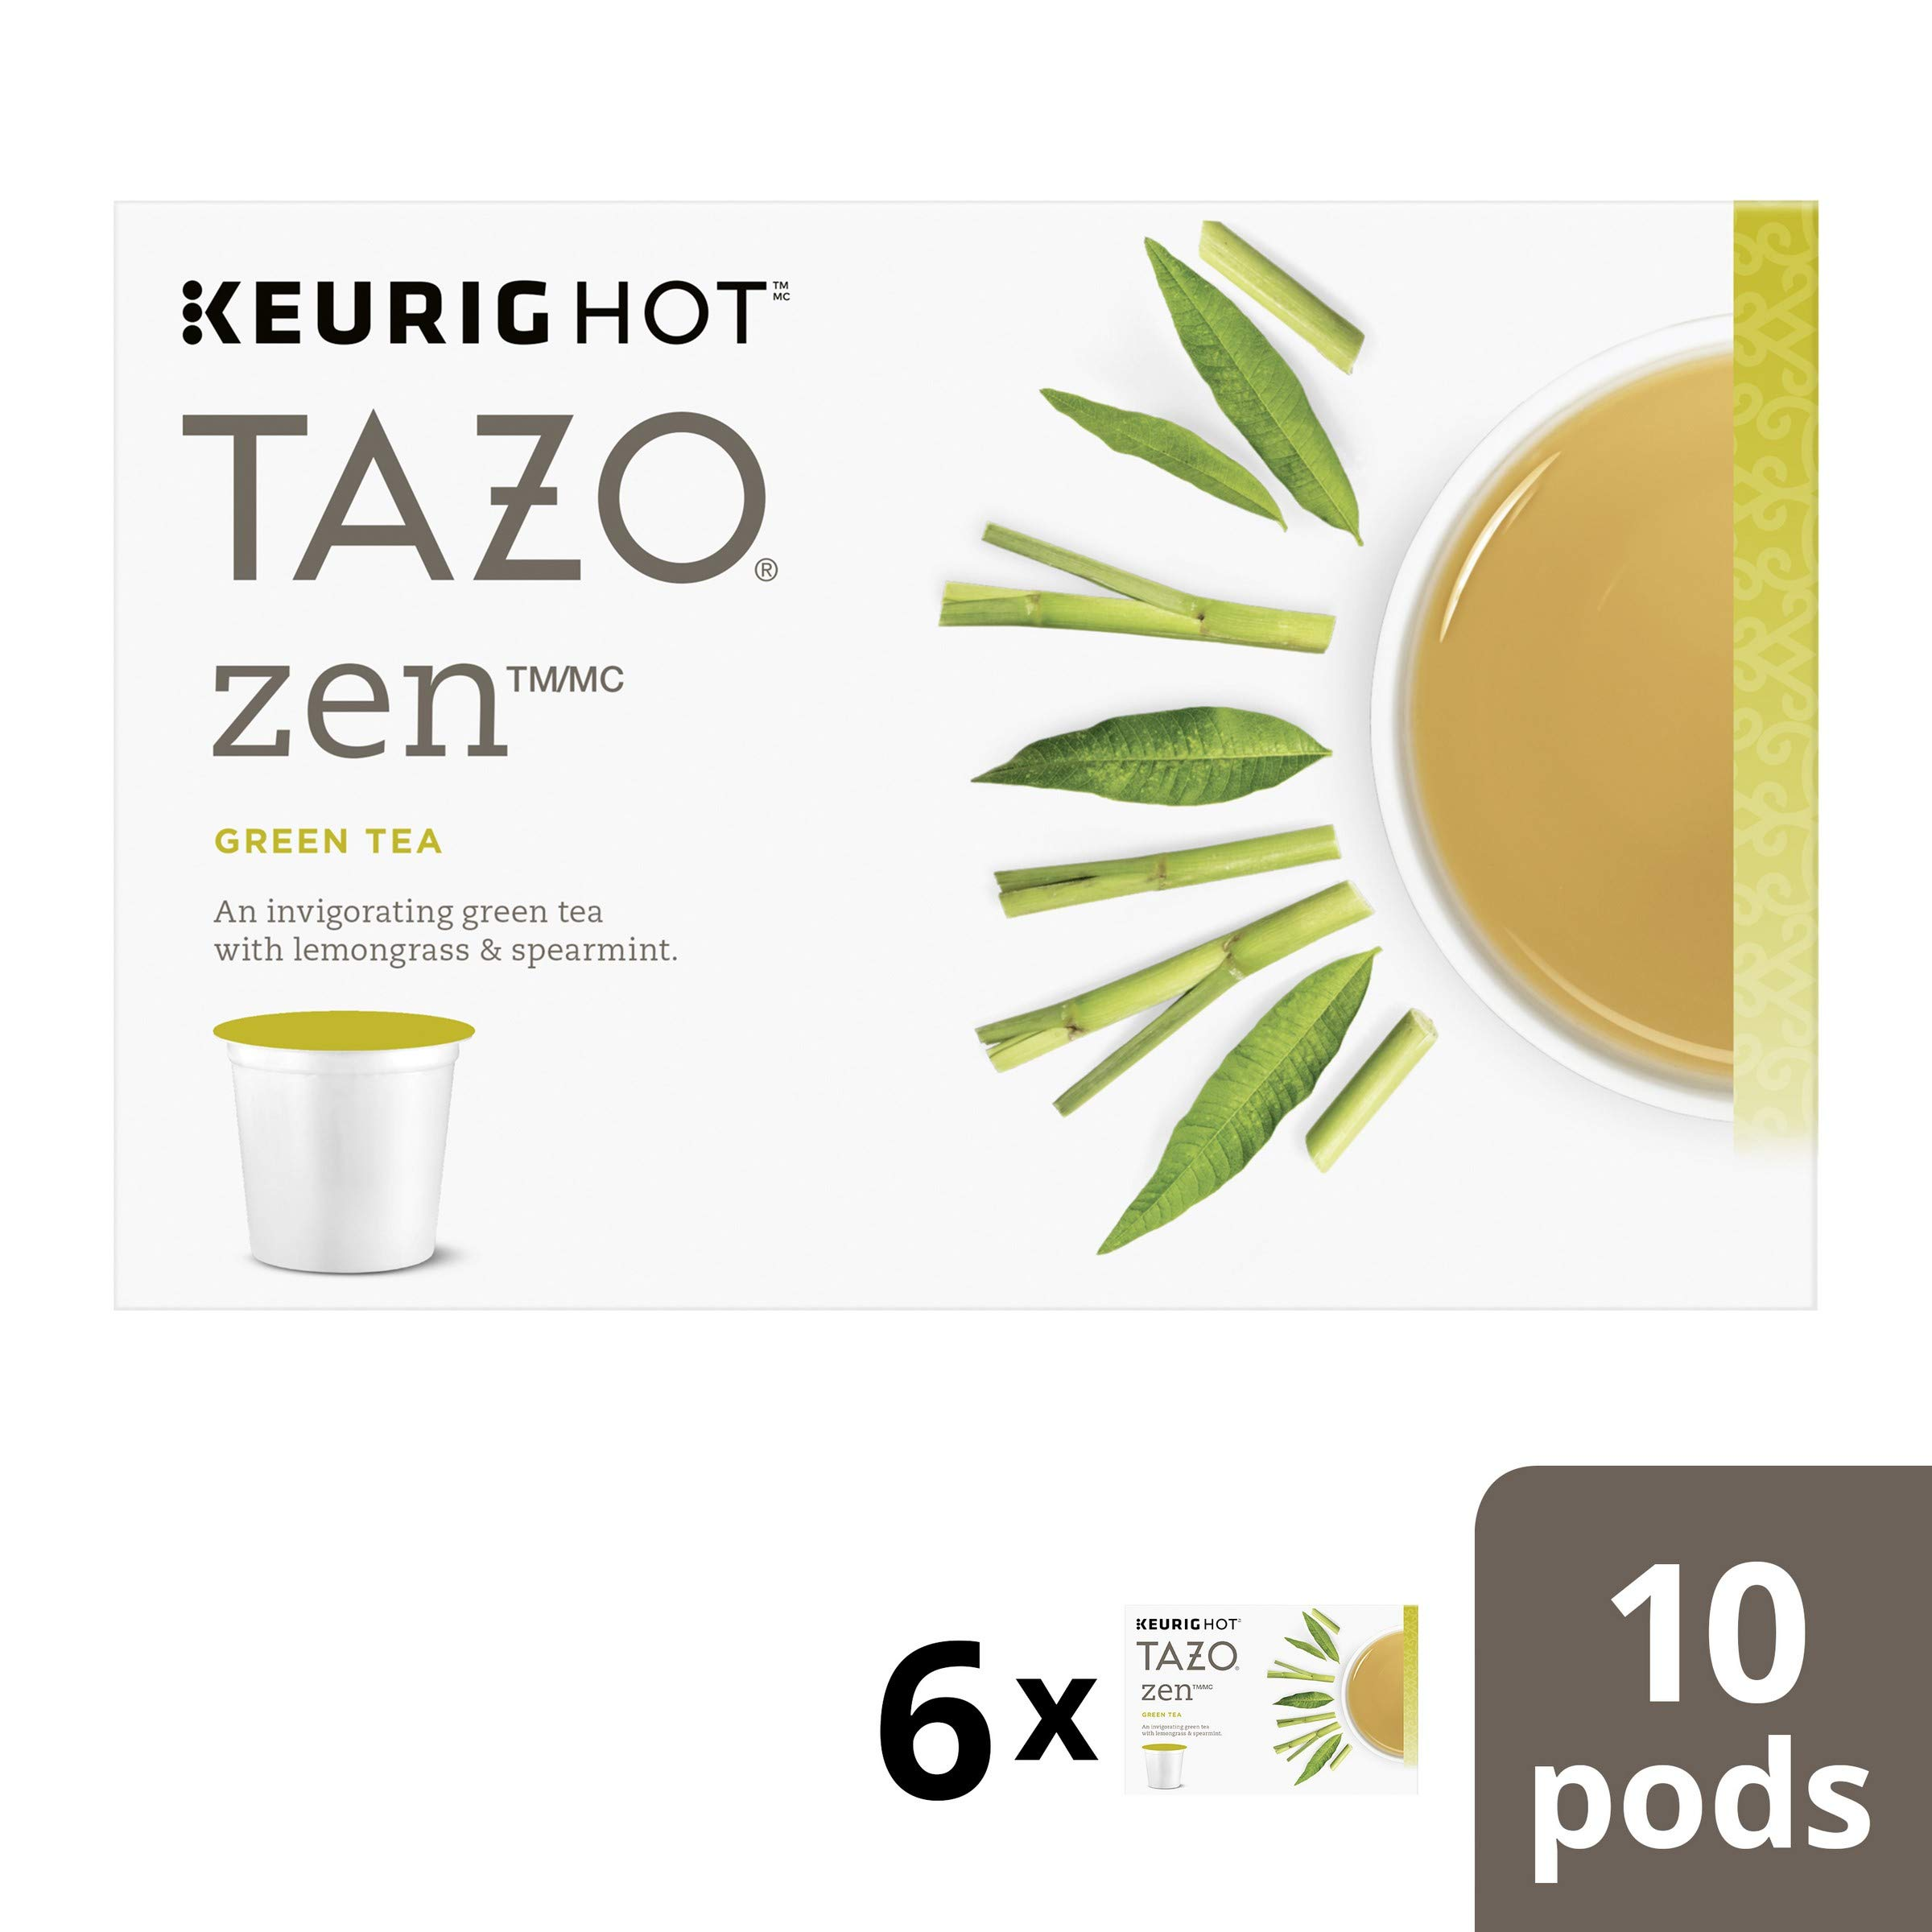 Tazo Zen Green Tea K-Cup, 10 ct (Pack of 6) by TAZO (Image #1)